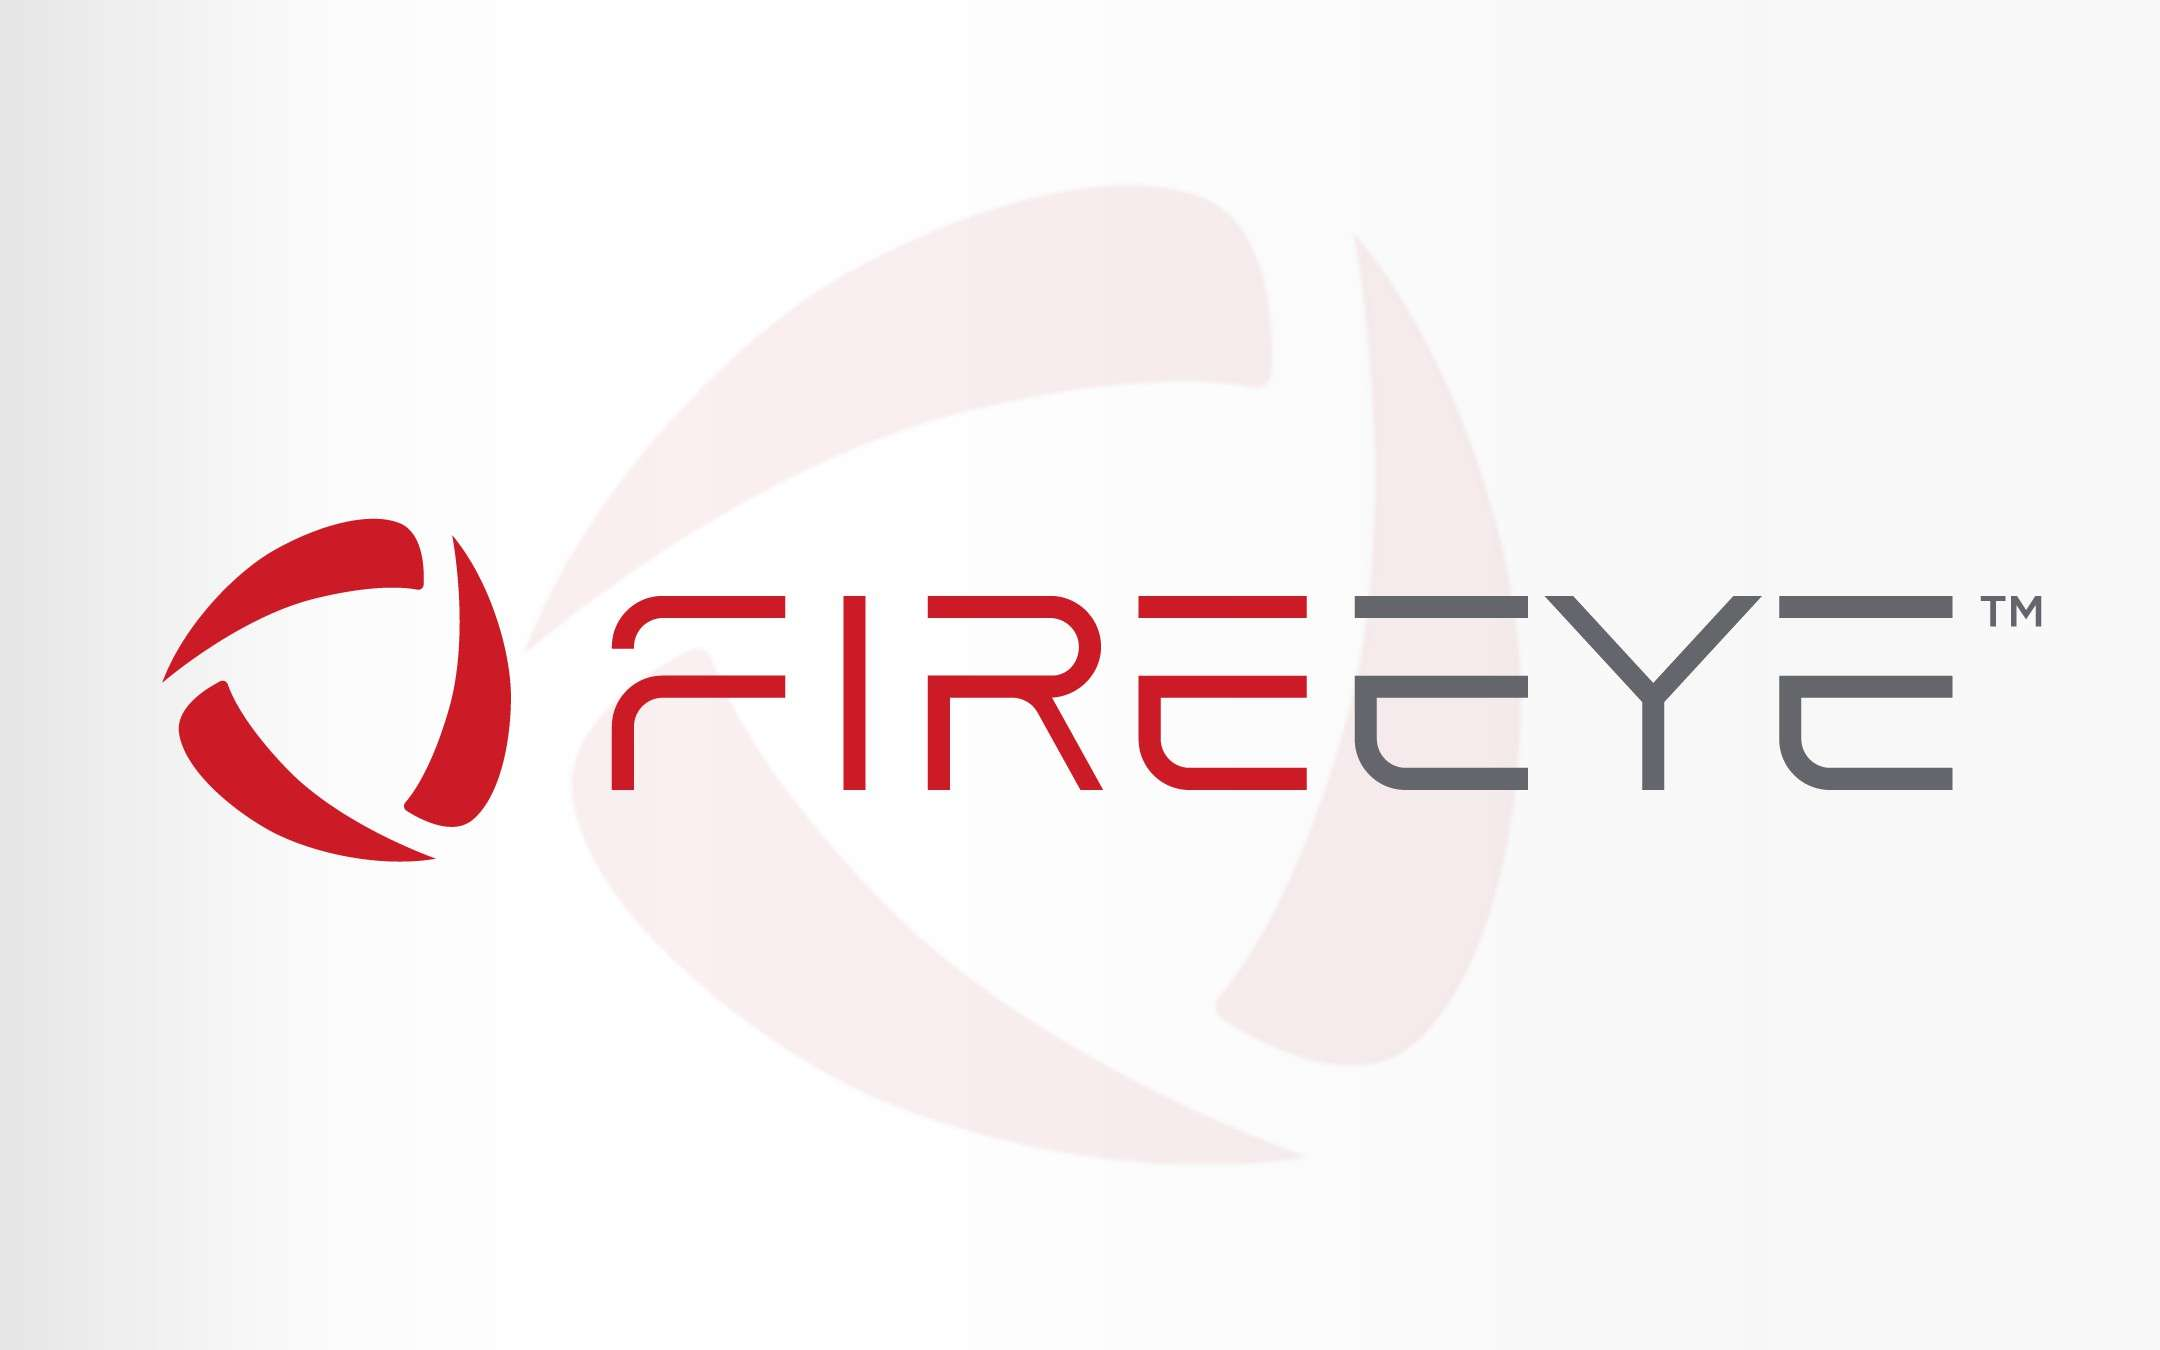 FireEye, serious cyber attack on the Red Team